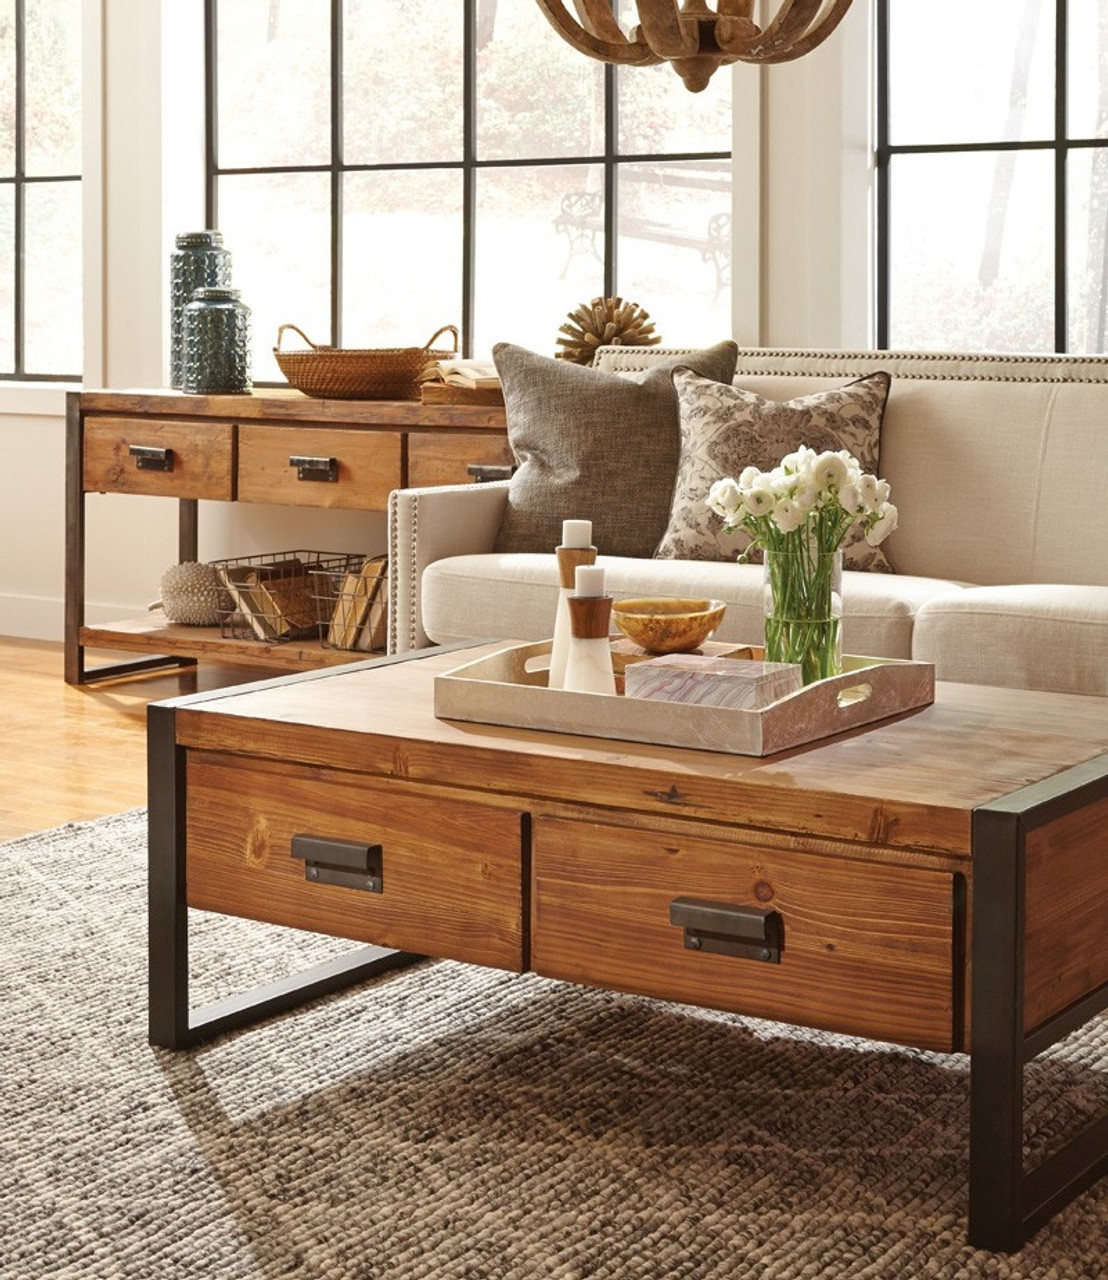 Coffee Table With Drawers: Rustic Industrial Coffee Table With Drawers